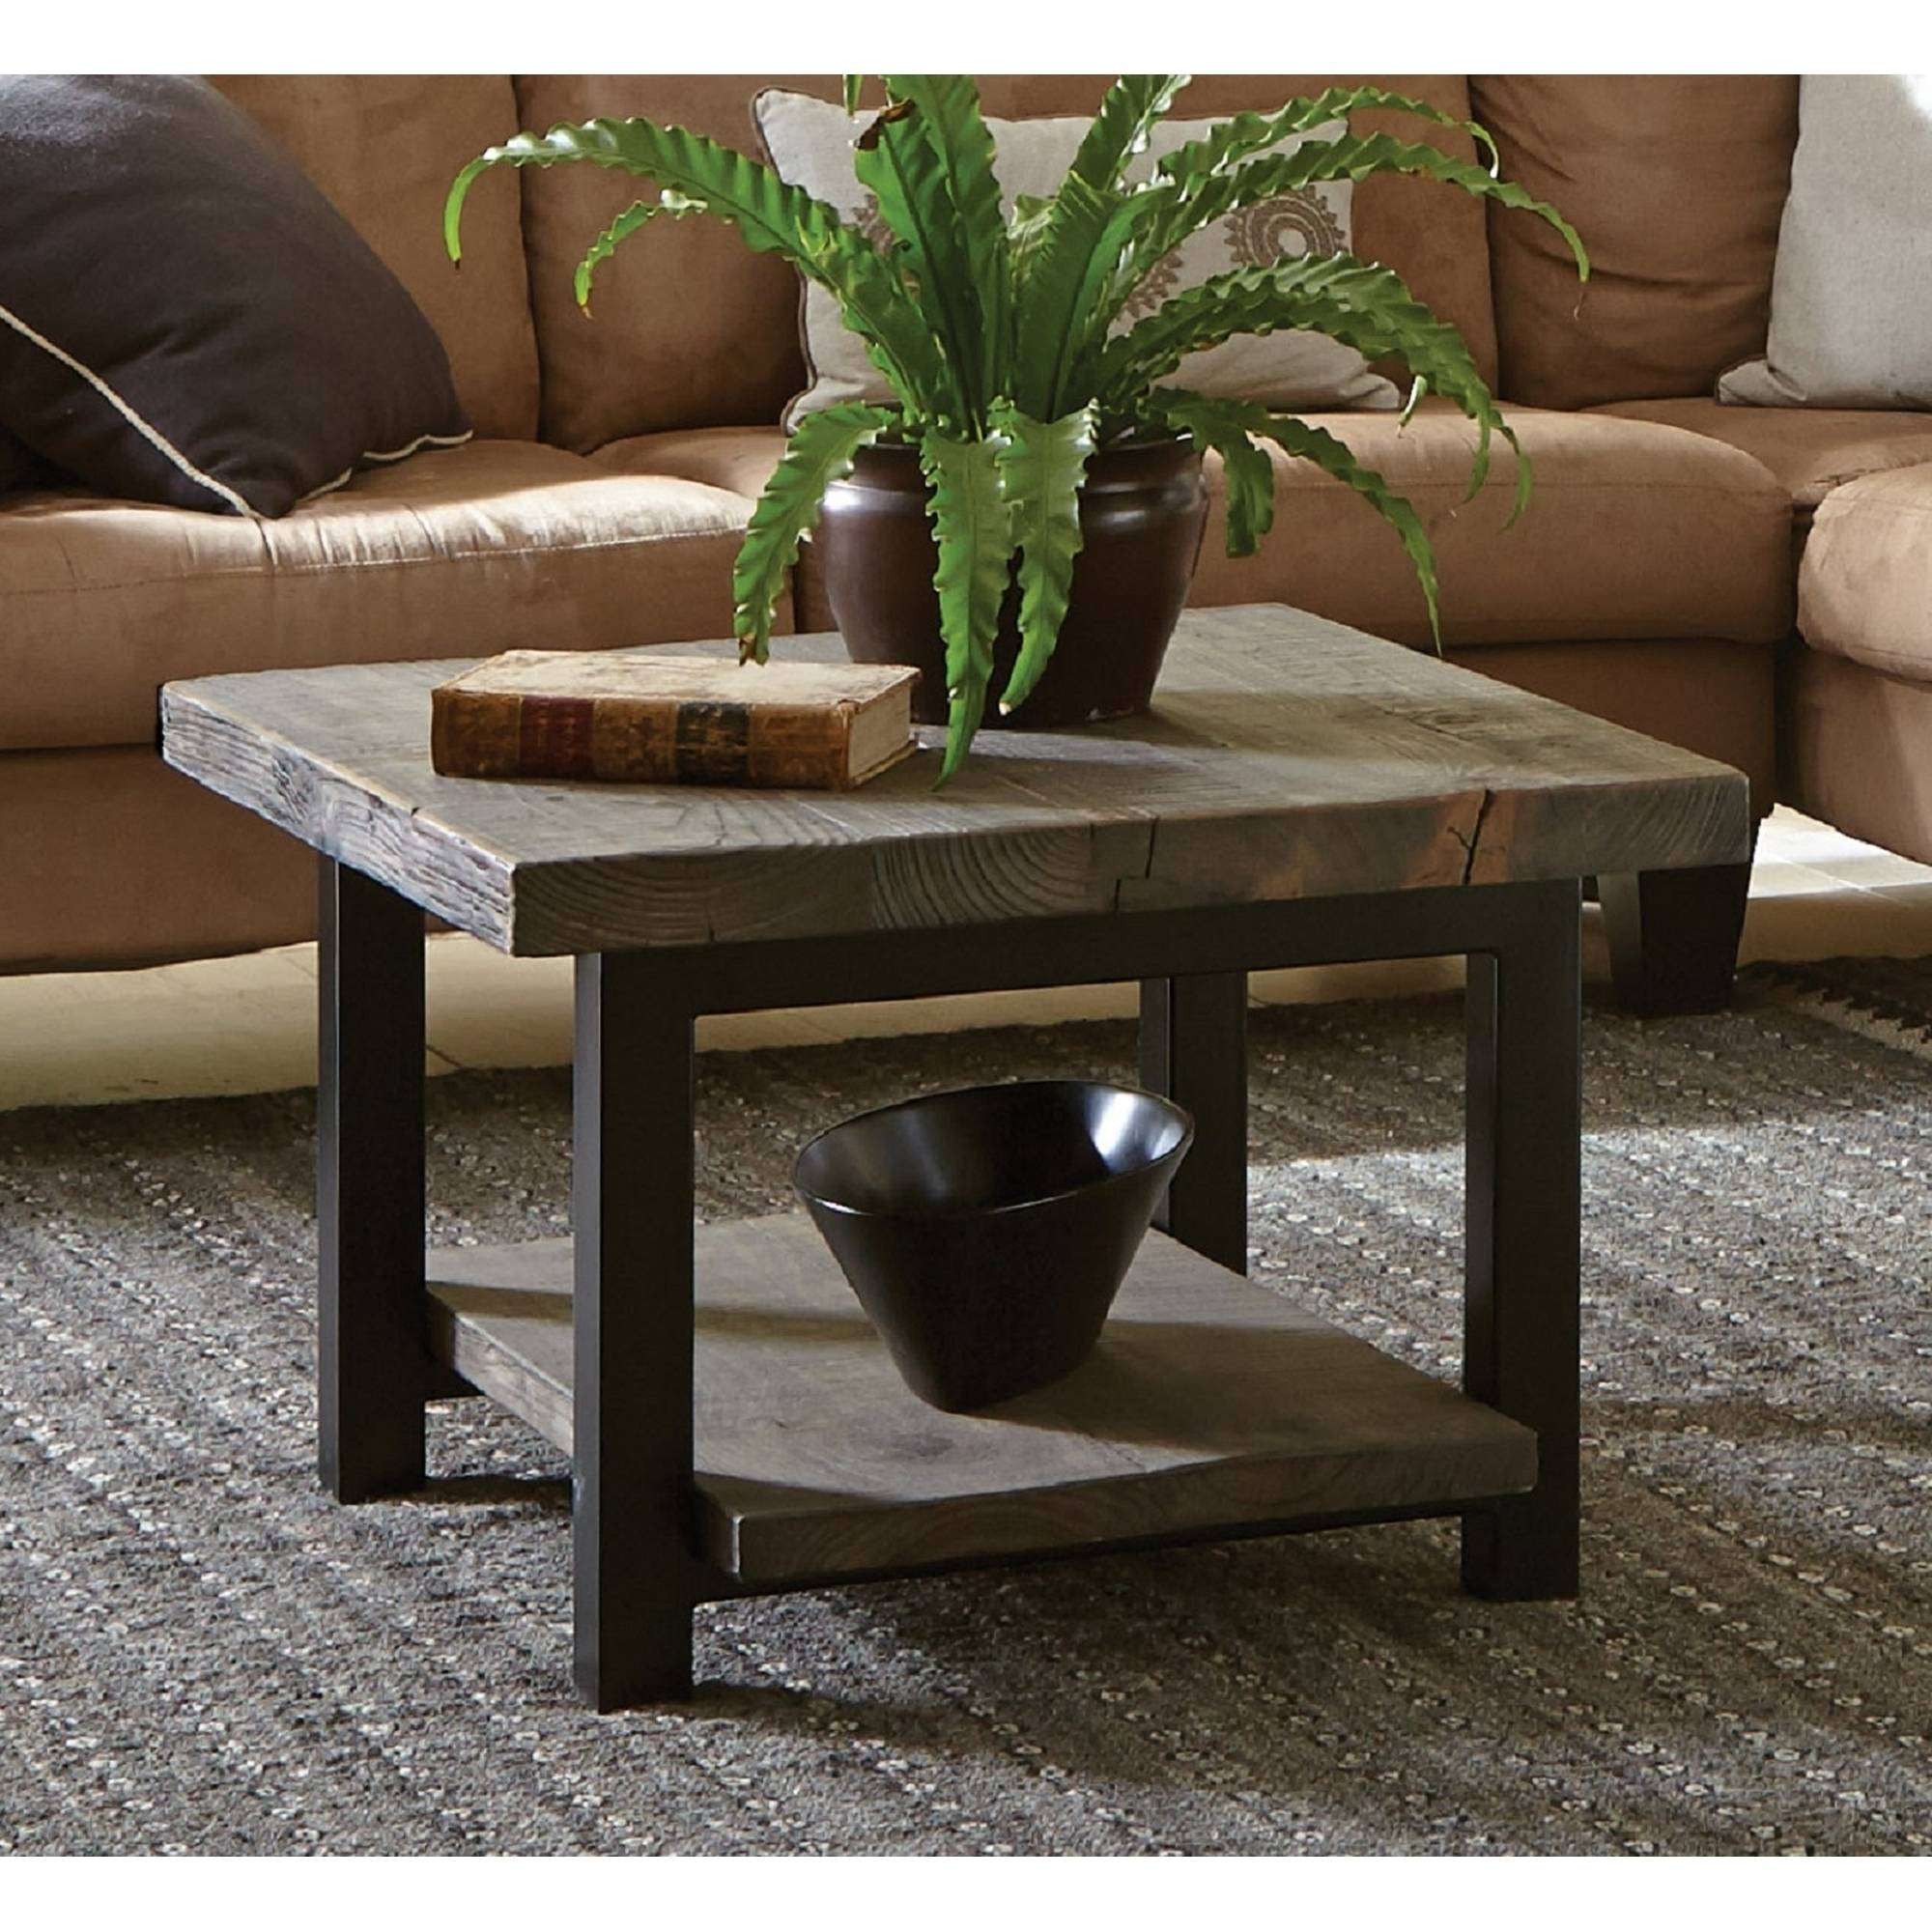 Pomona Cube Coffee Table, Rustic Natural